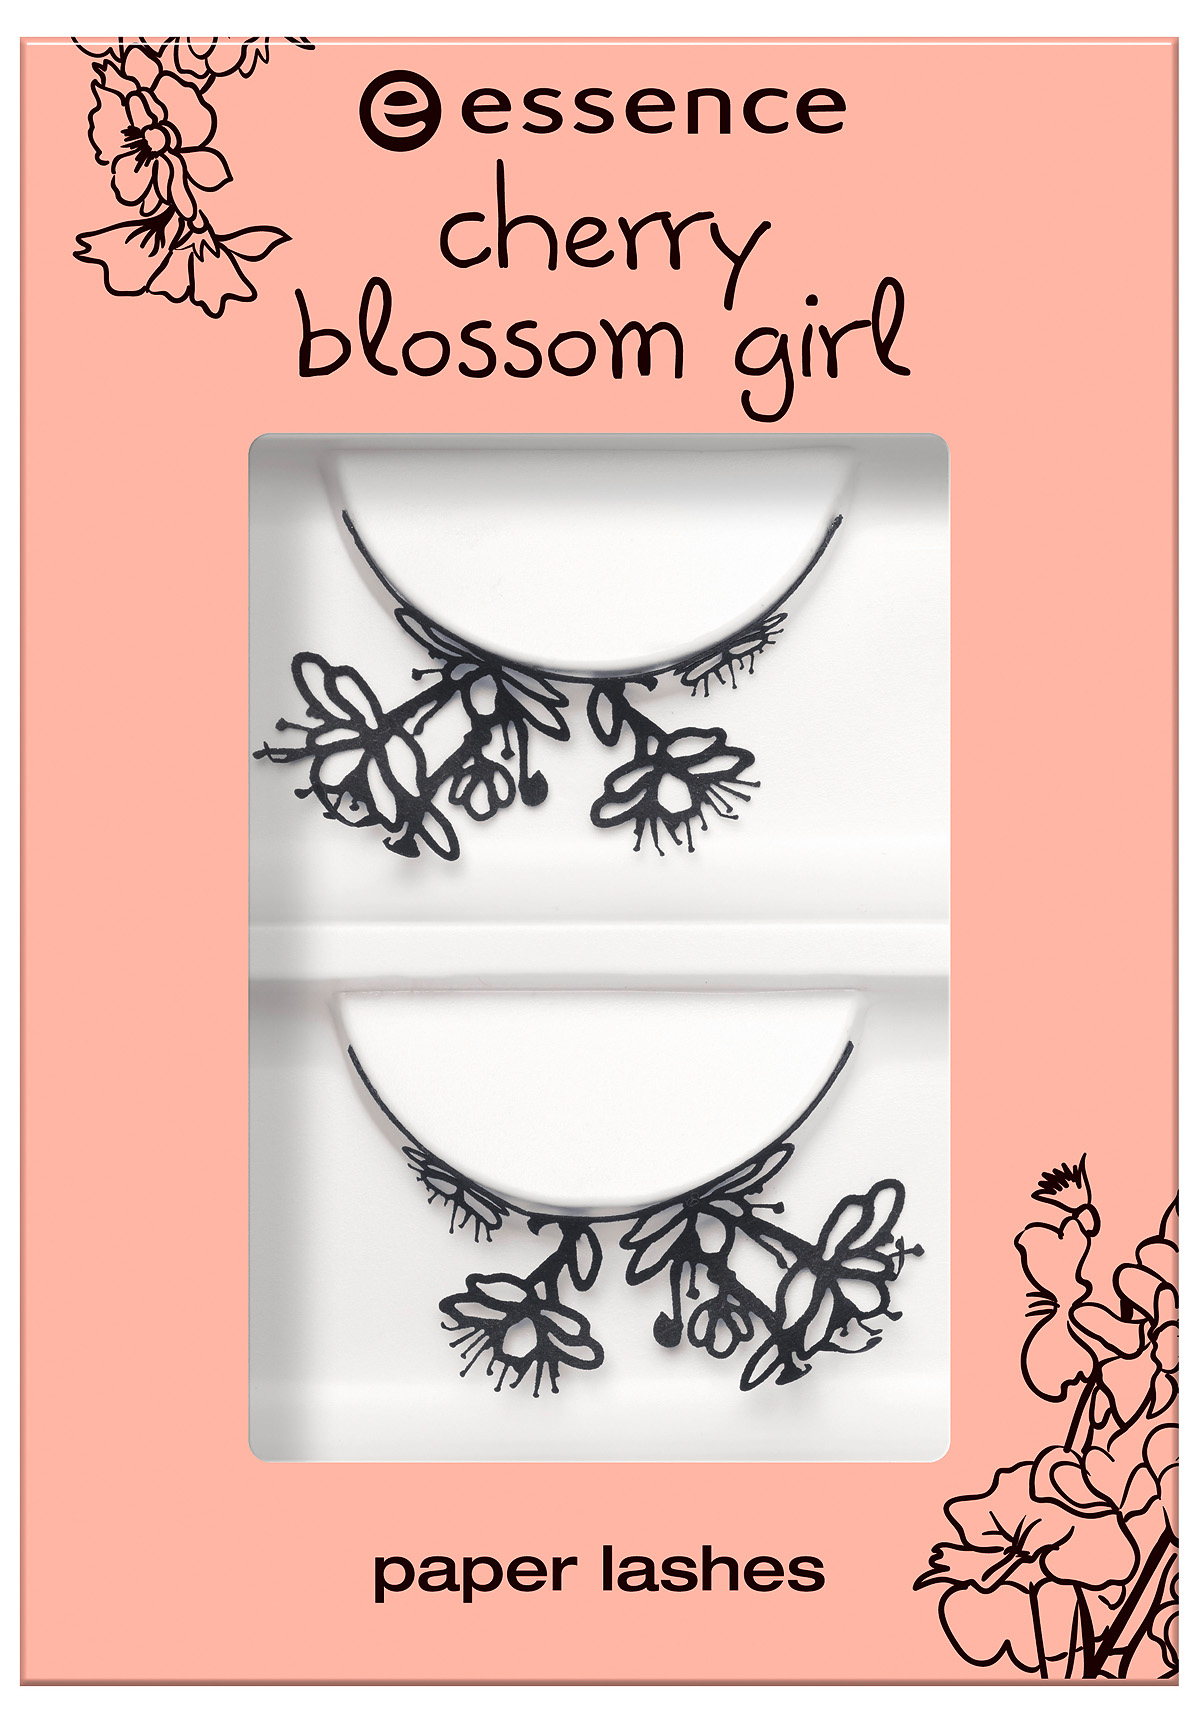 essence cherry blossom girl – paper lashes